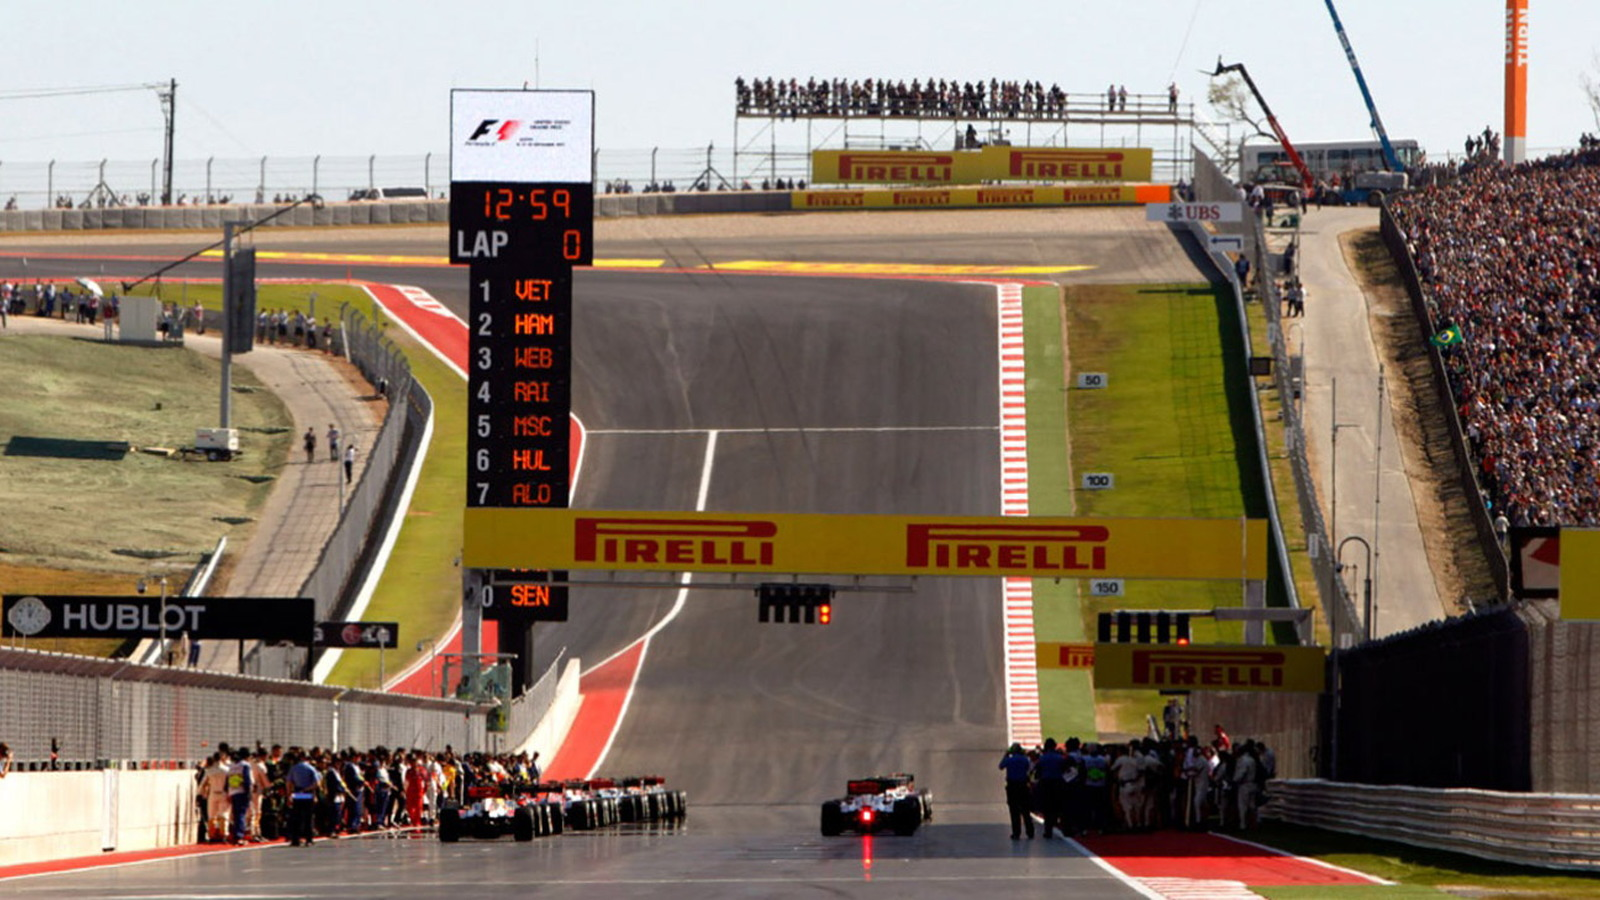 United States Grand Prix at the Circuit of the Americas in Austin, Texas